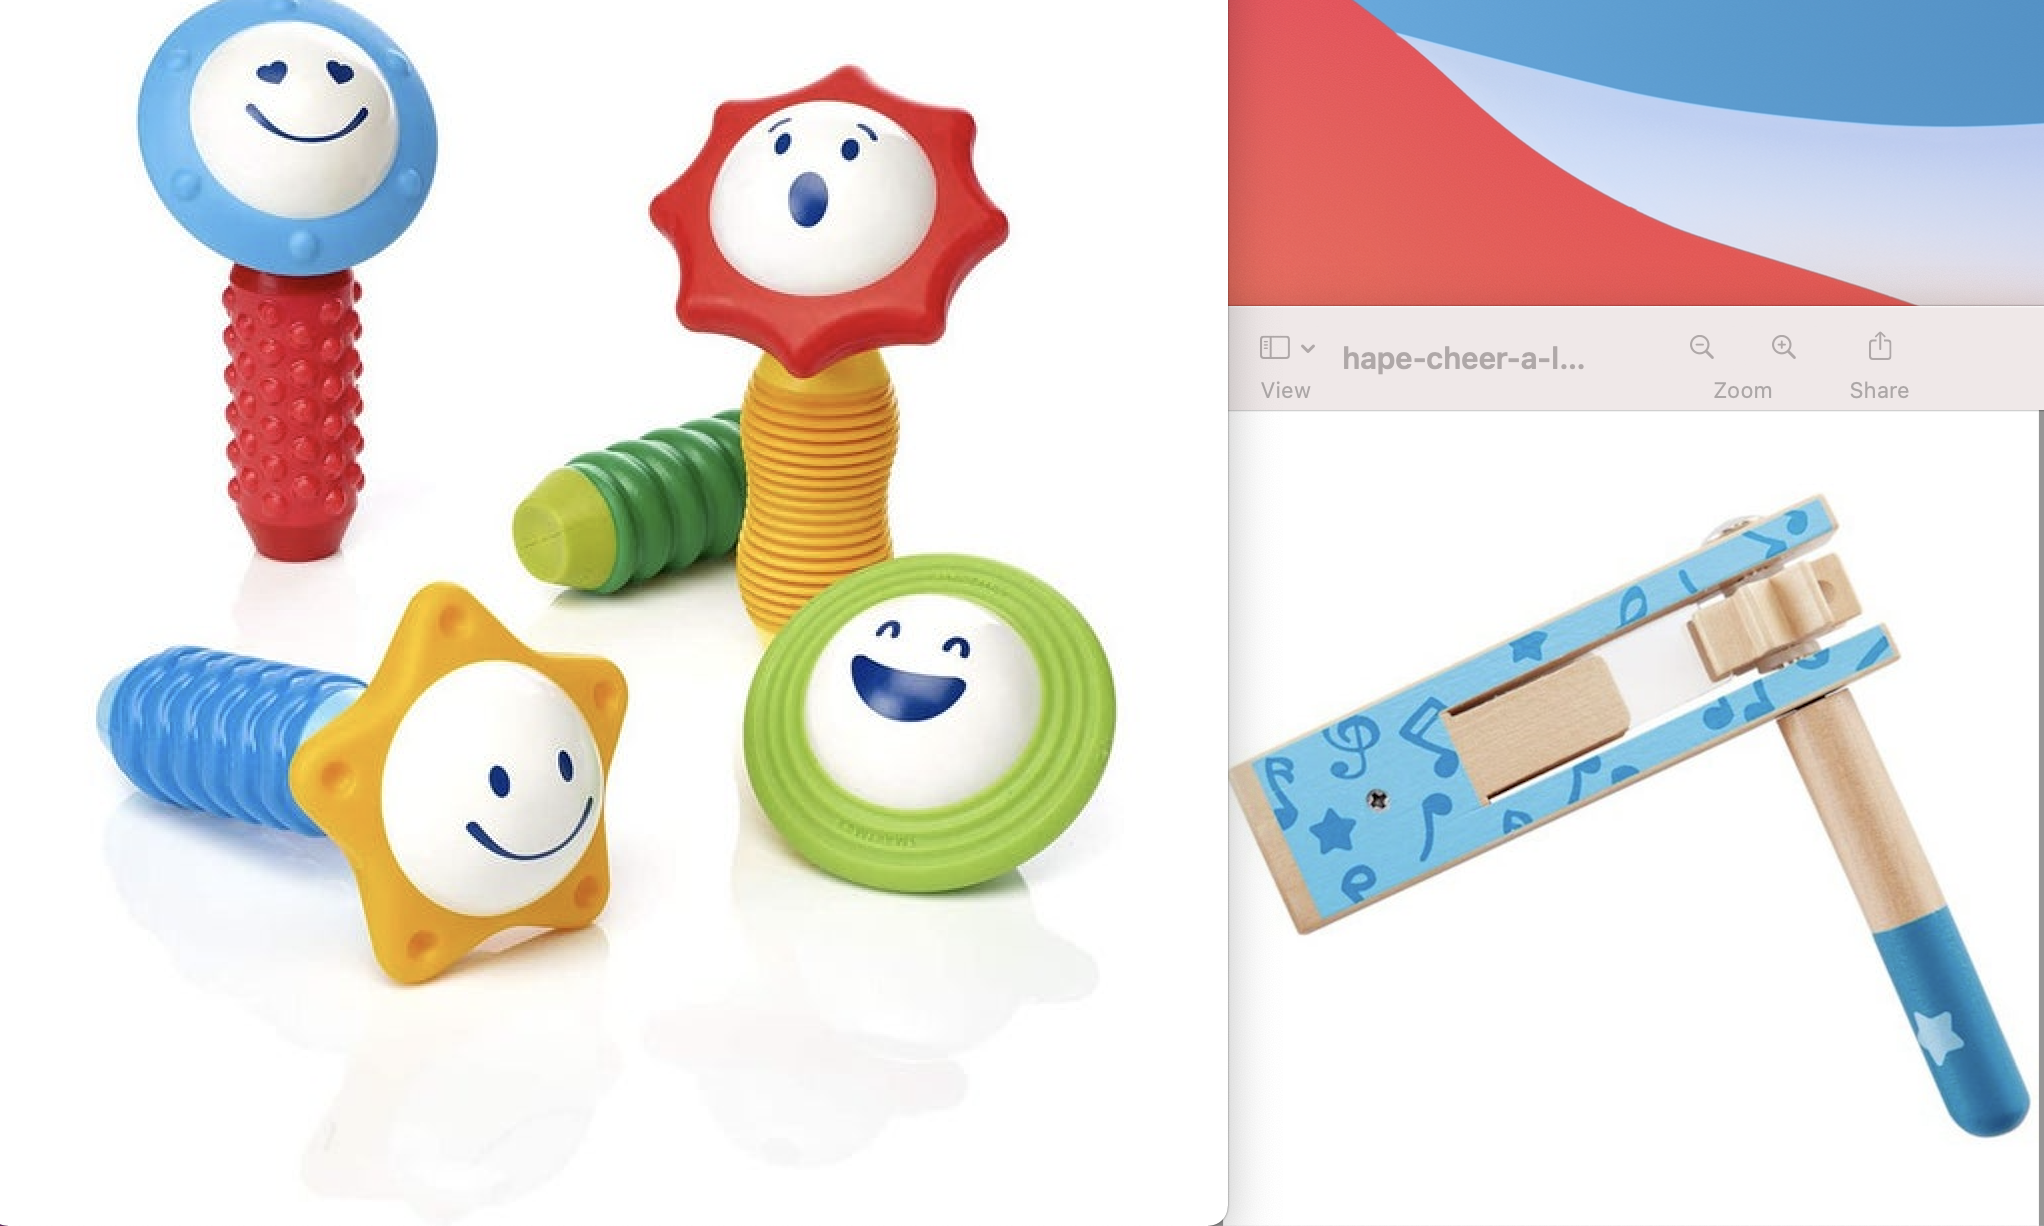 INFANT NOISEMAKER AND MY FIRST SOUND AND SENSES